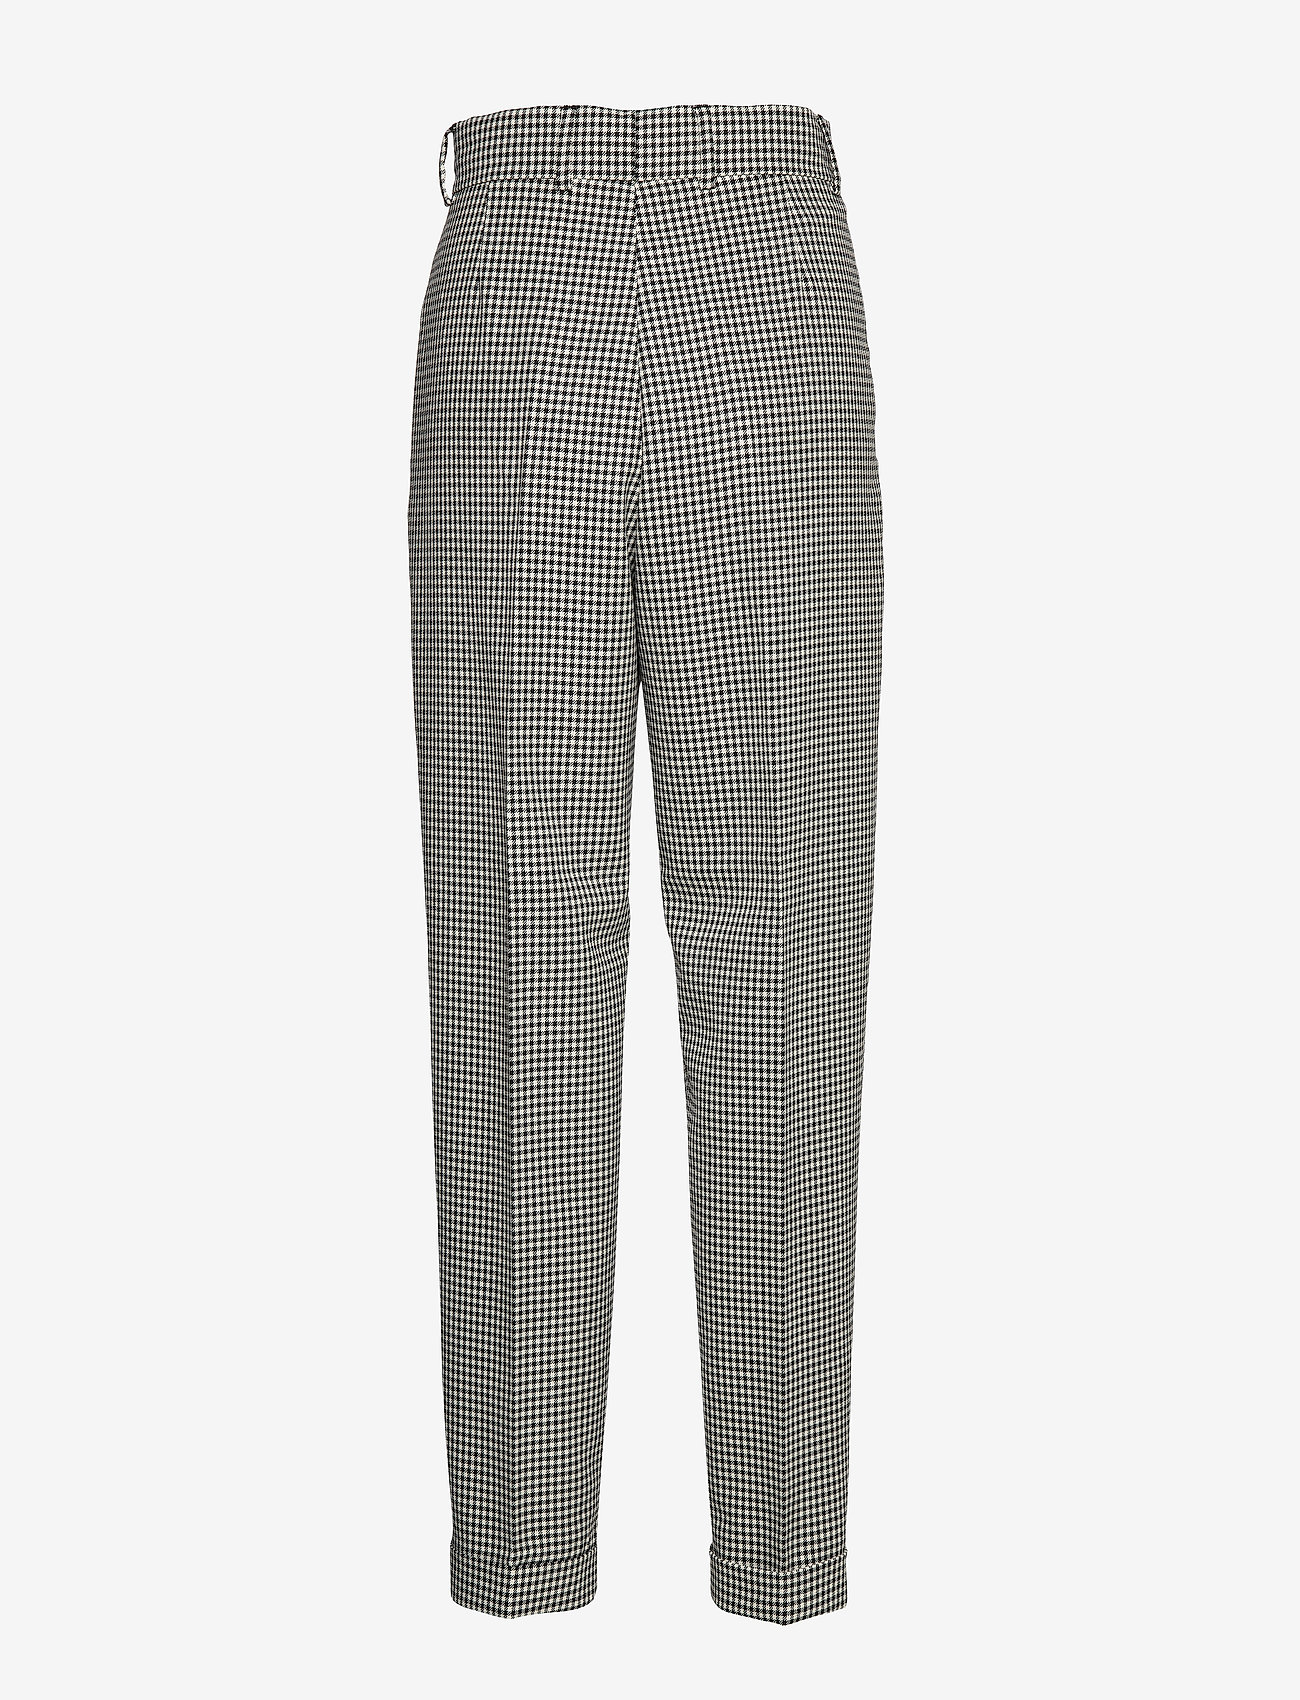 Star Trousers (Black Pepita Check) - Hope yDcVtS